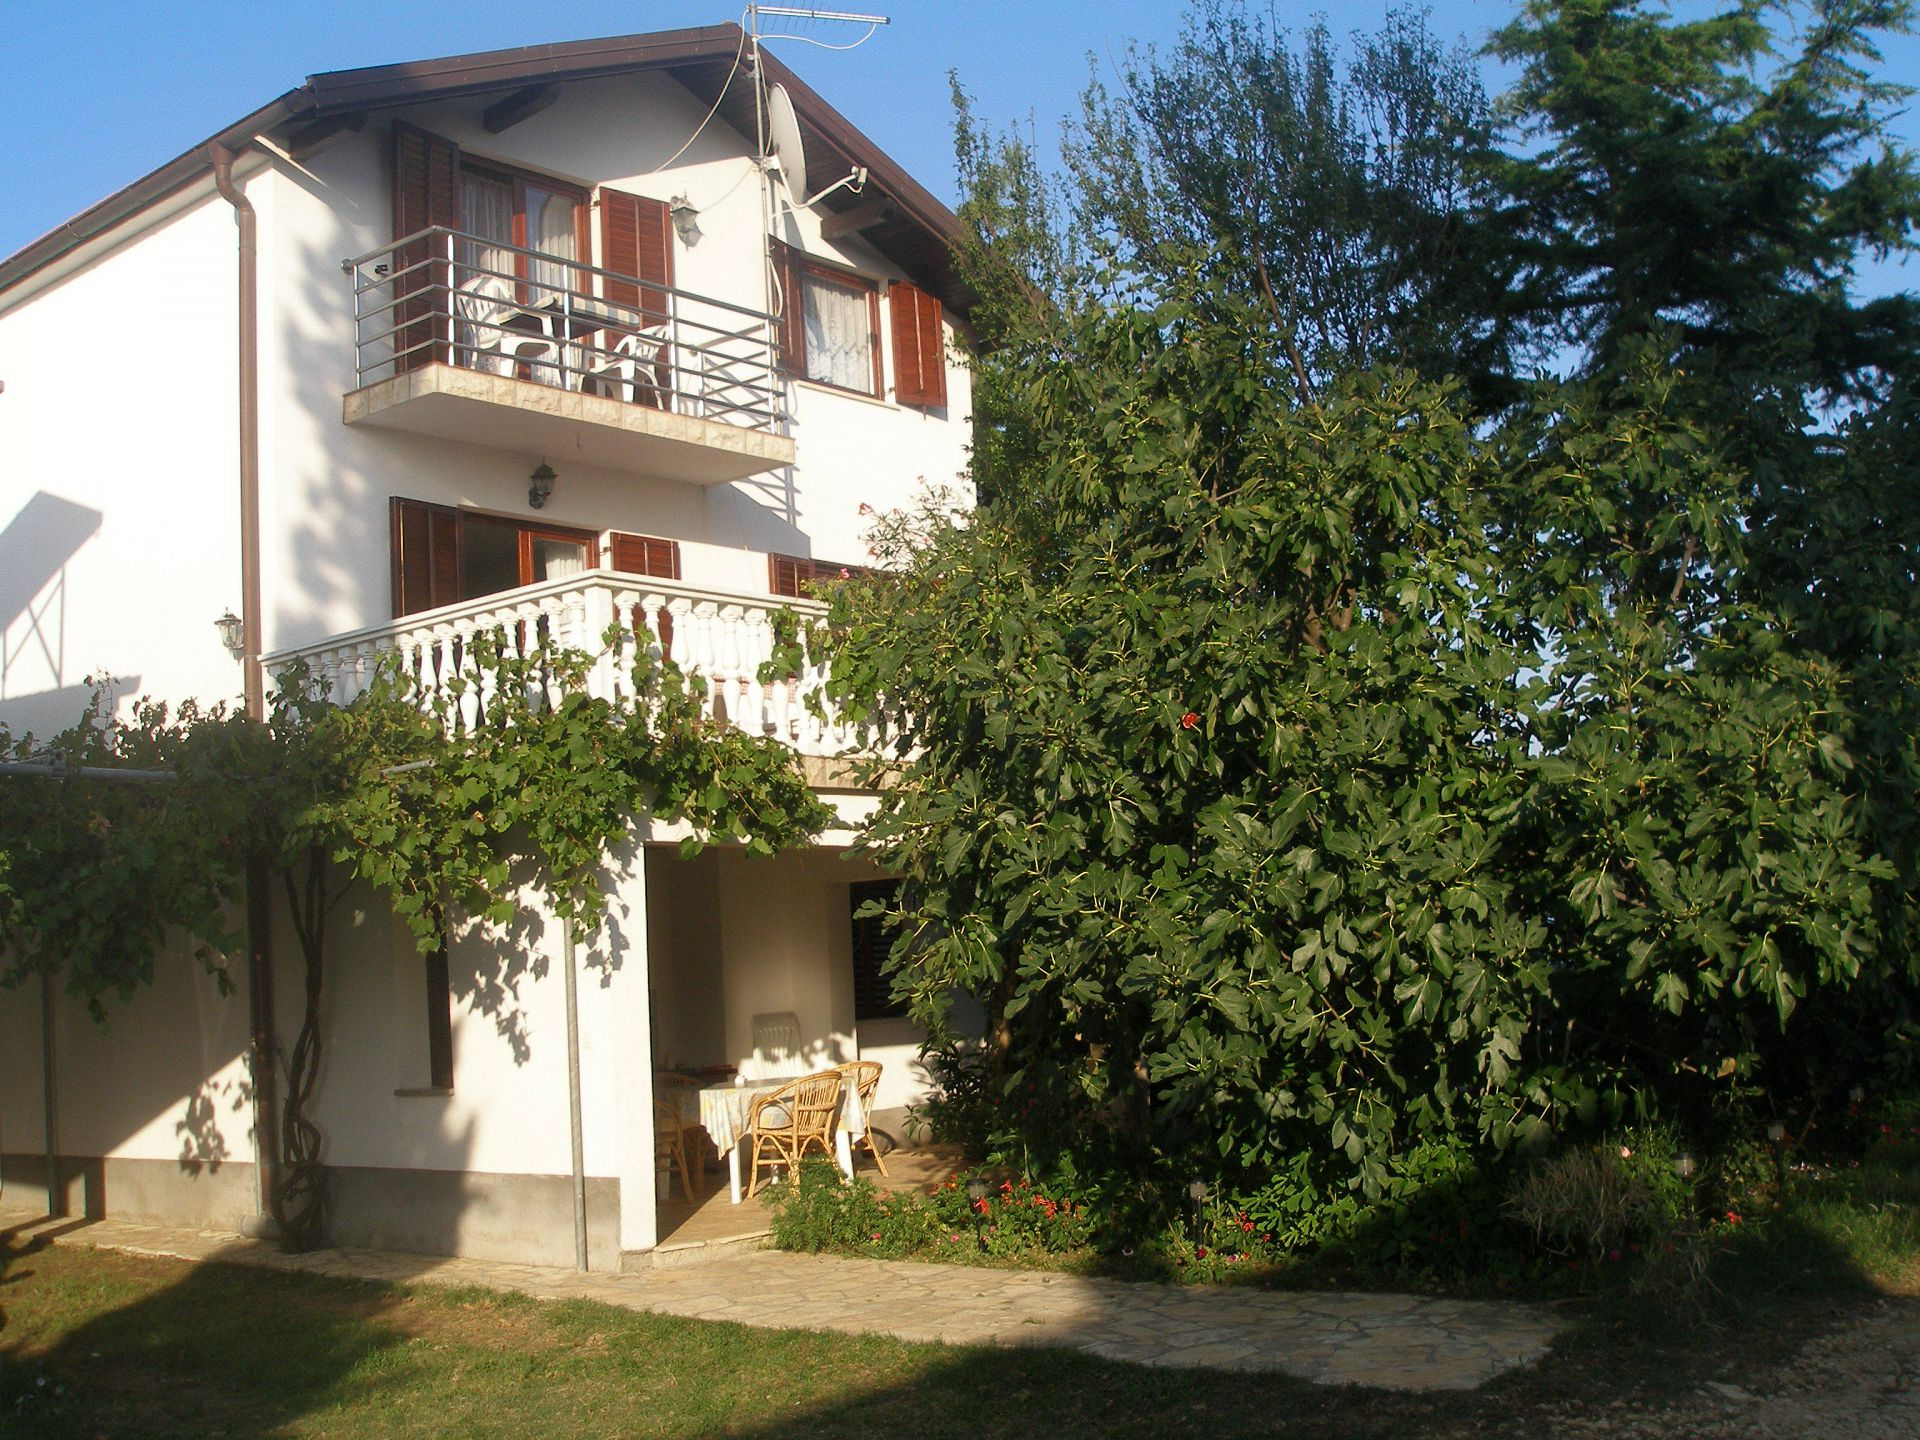 001PRIV - Privlaka - Apartments Croatia